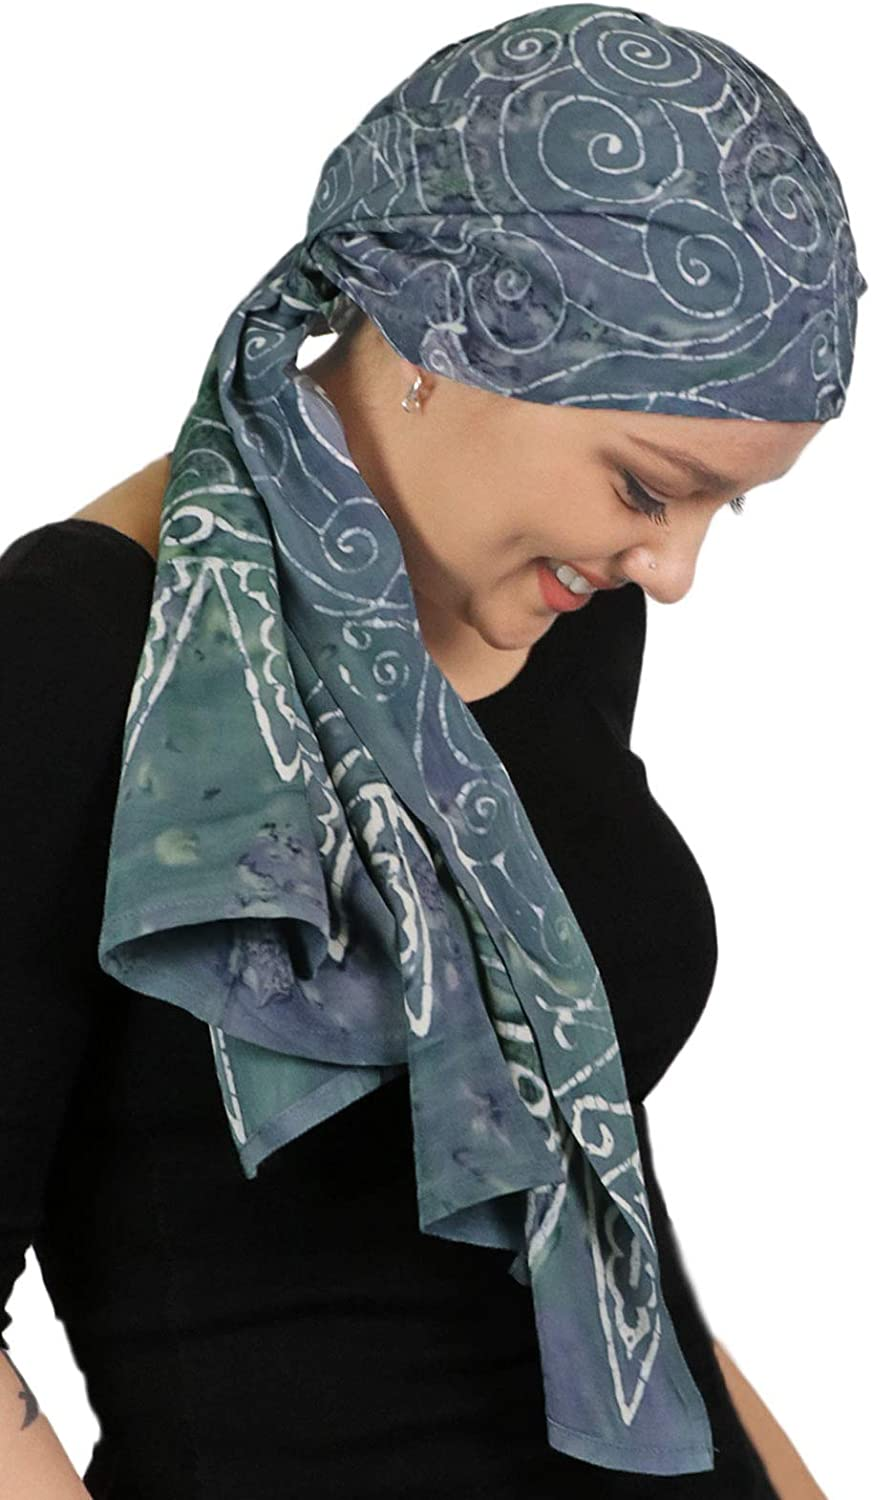 Head Scarf for Women Cancer Headwear Chemo Scarves Headscarves Headcovers 15 X 60 (Grey Swirl)